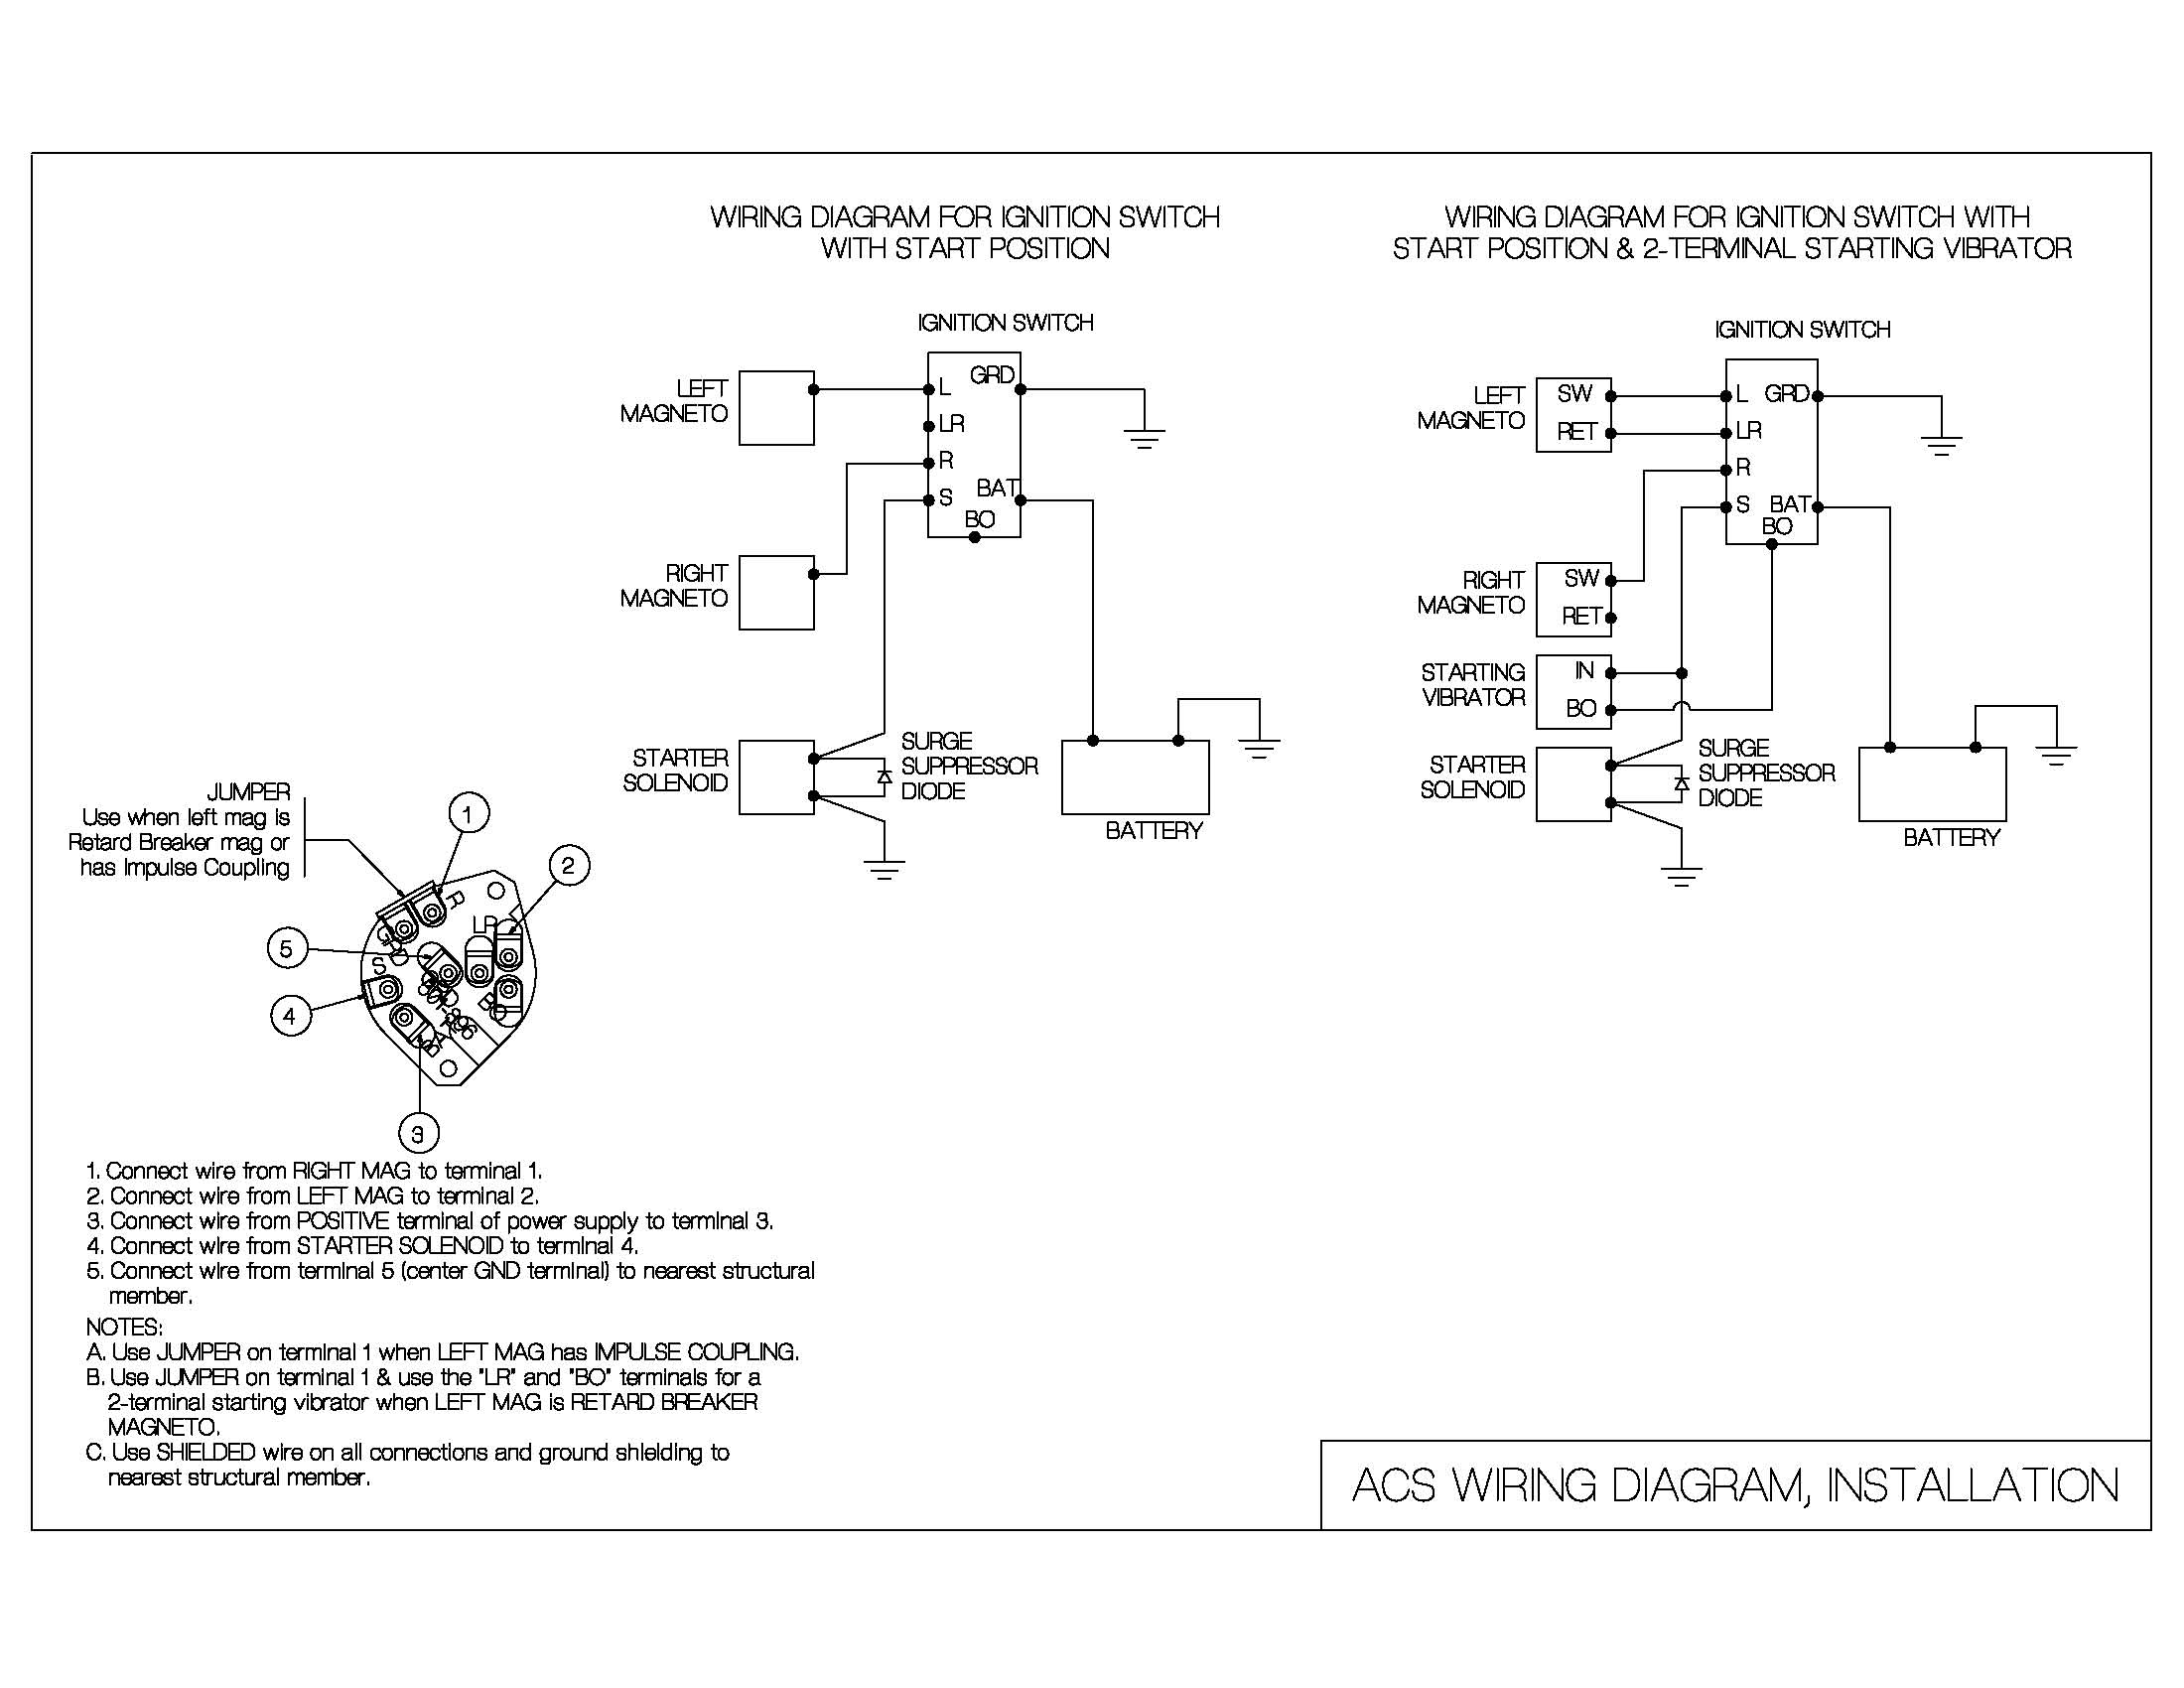 Wiring Diagram ignition switch wiring diagram acs products company terex hd1000 wiring diagram at metegol.co